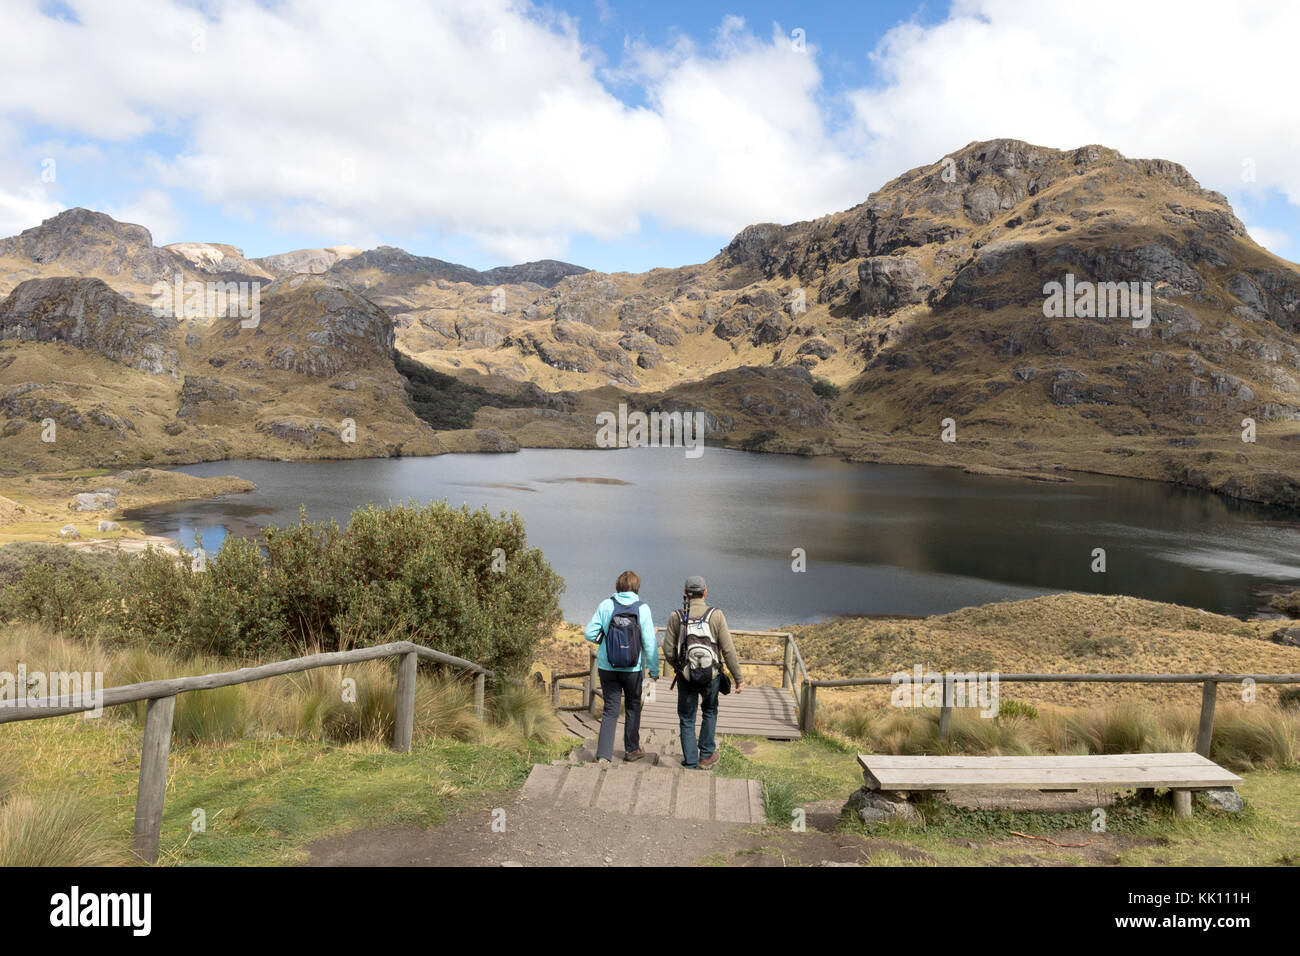 Ecuador Travel - a couple walking in El Cajas National Park, southern Ecuador, South America - Stock Image